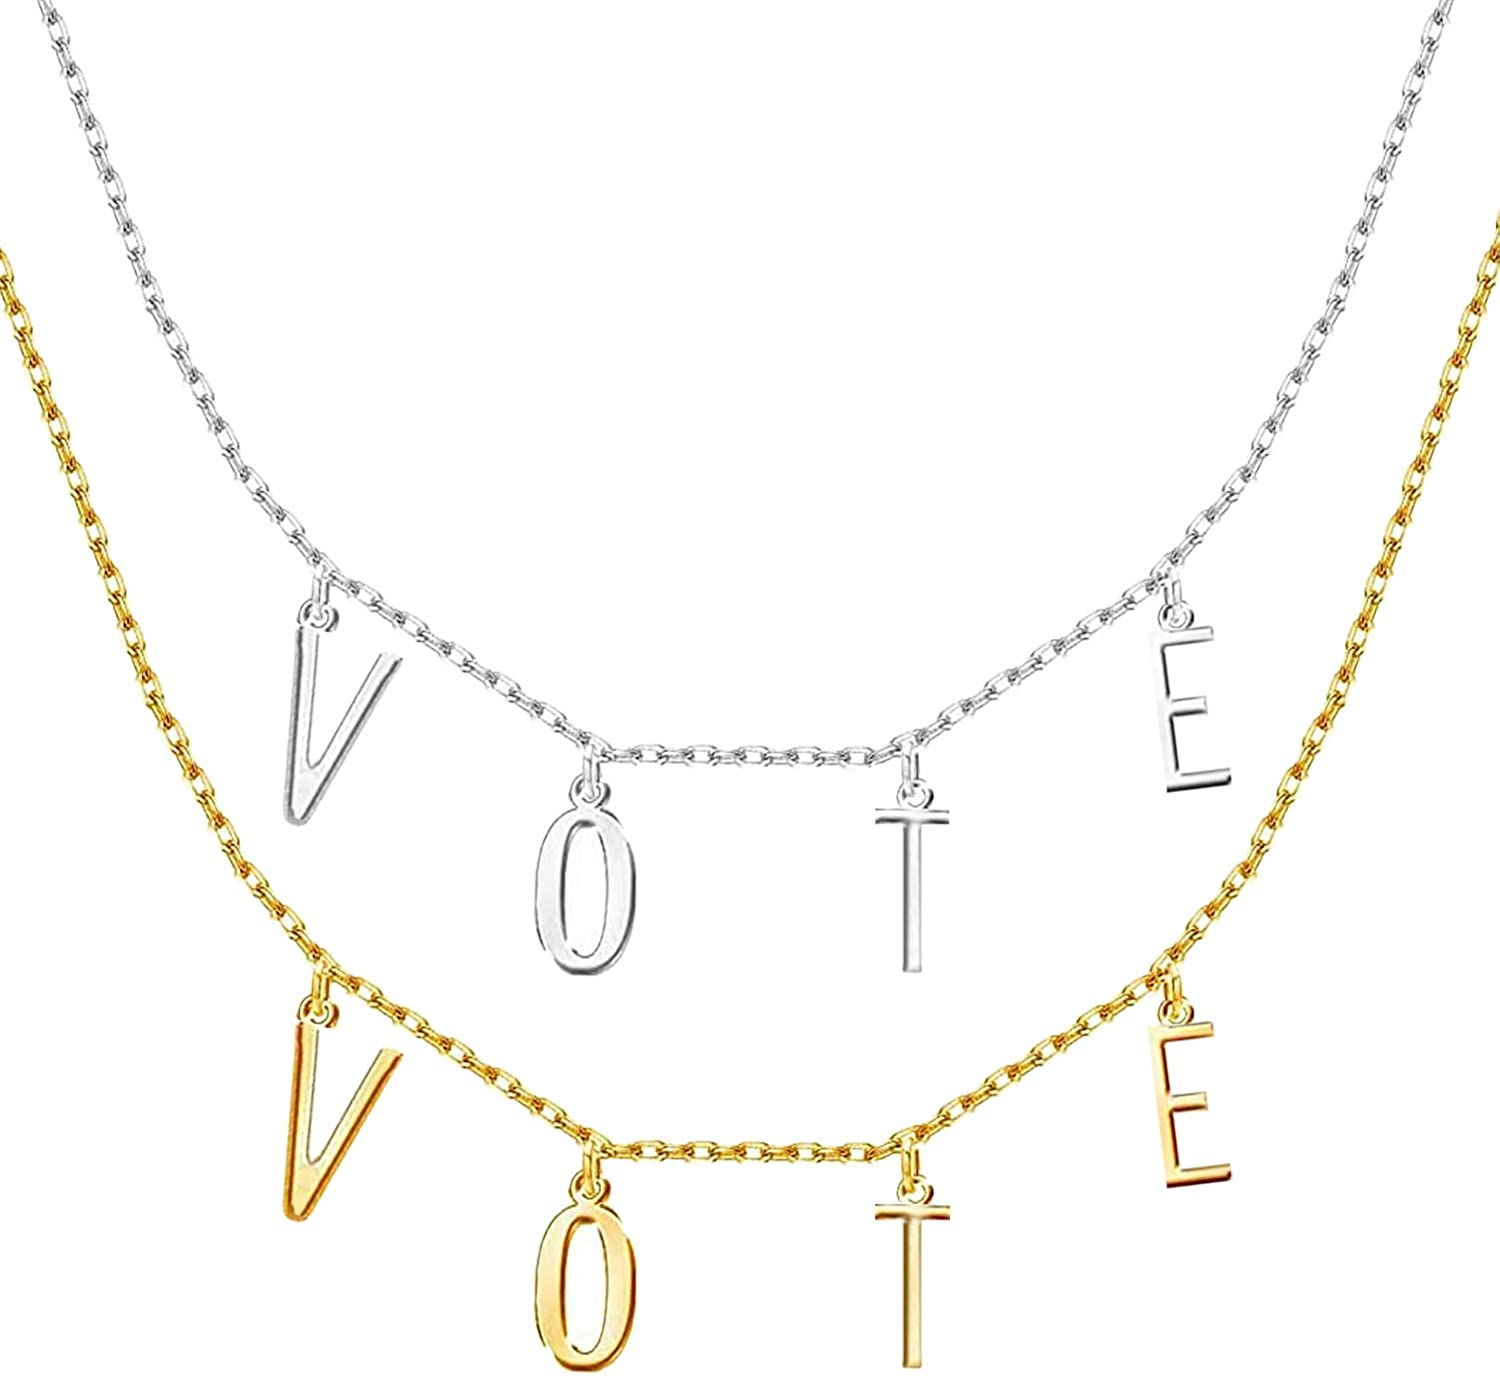 PANTIDE 2Pcs Michelle Obama Vote Necklace Pendant, Personalized Initial Name Necklace, Custom Spaced Letter Choker Jewelry for Women and Teen Girls (Gold, Silver)